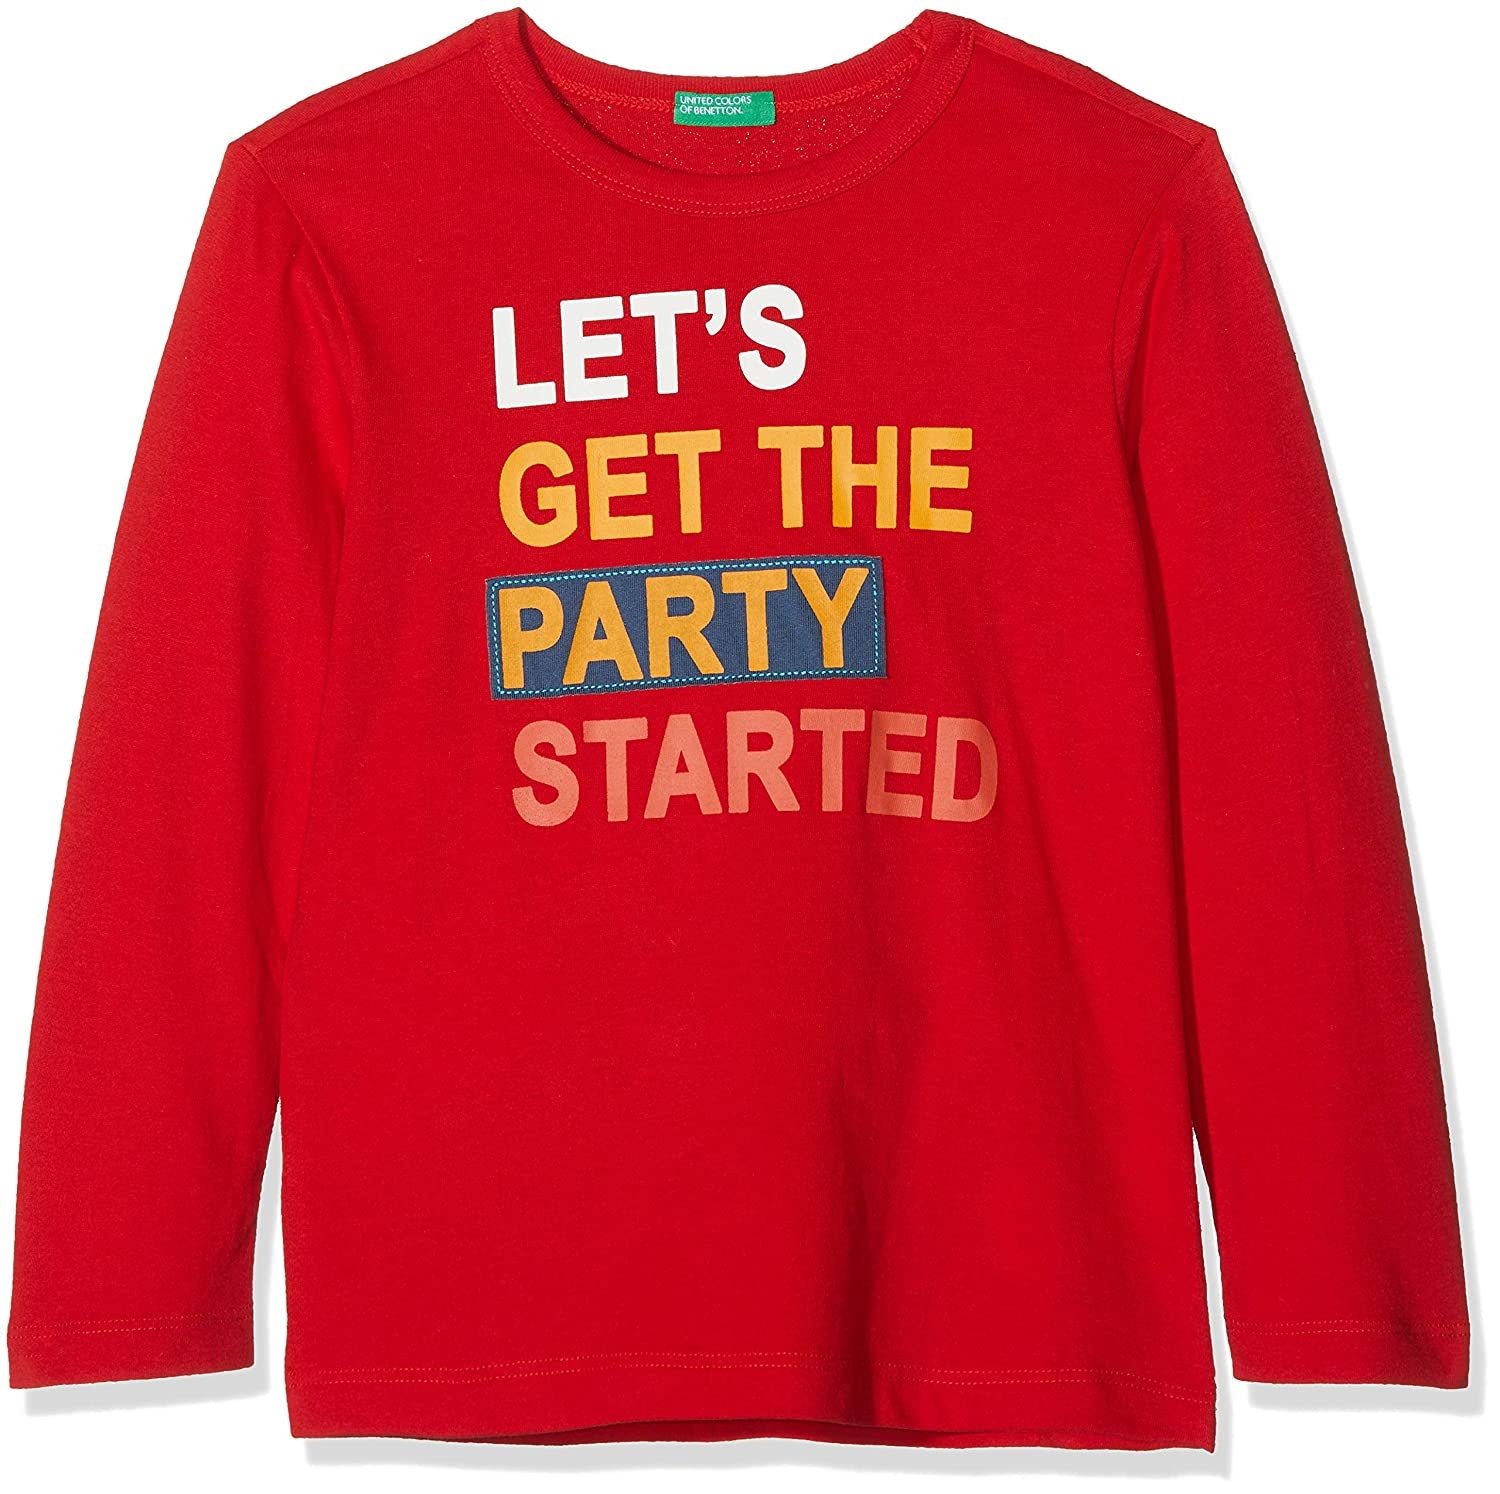 United Colors of Benetton T-Shirt L/S, Camiseta para Niños: Amazon.es: Ropa y accesorios